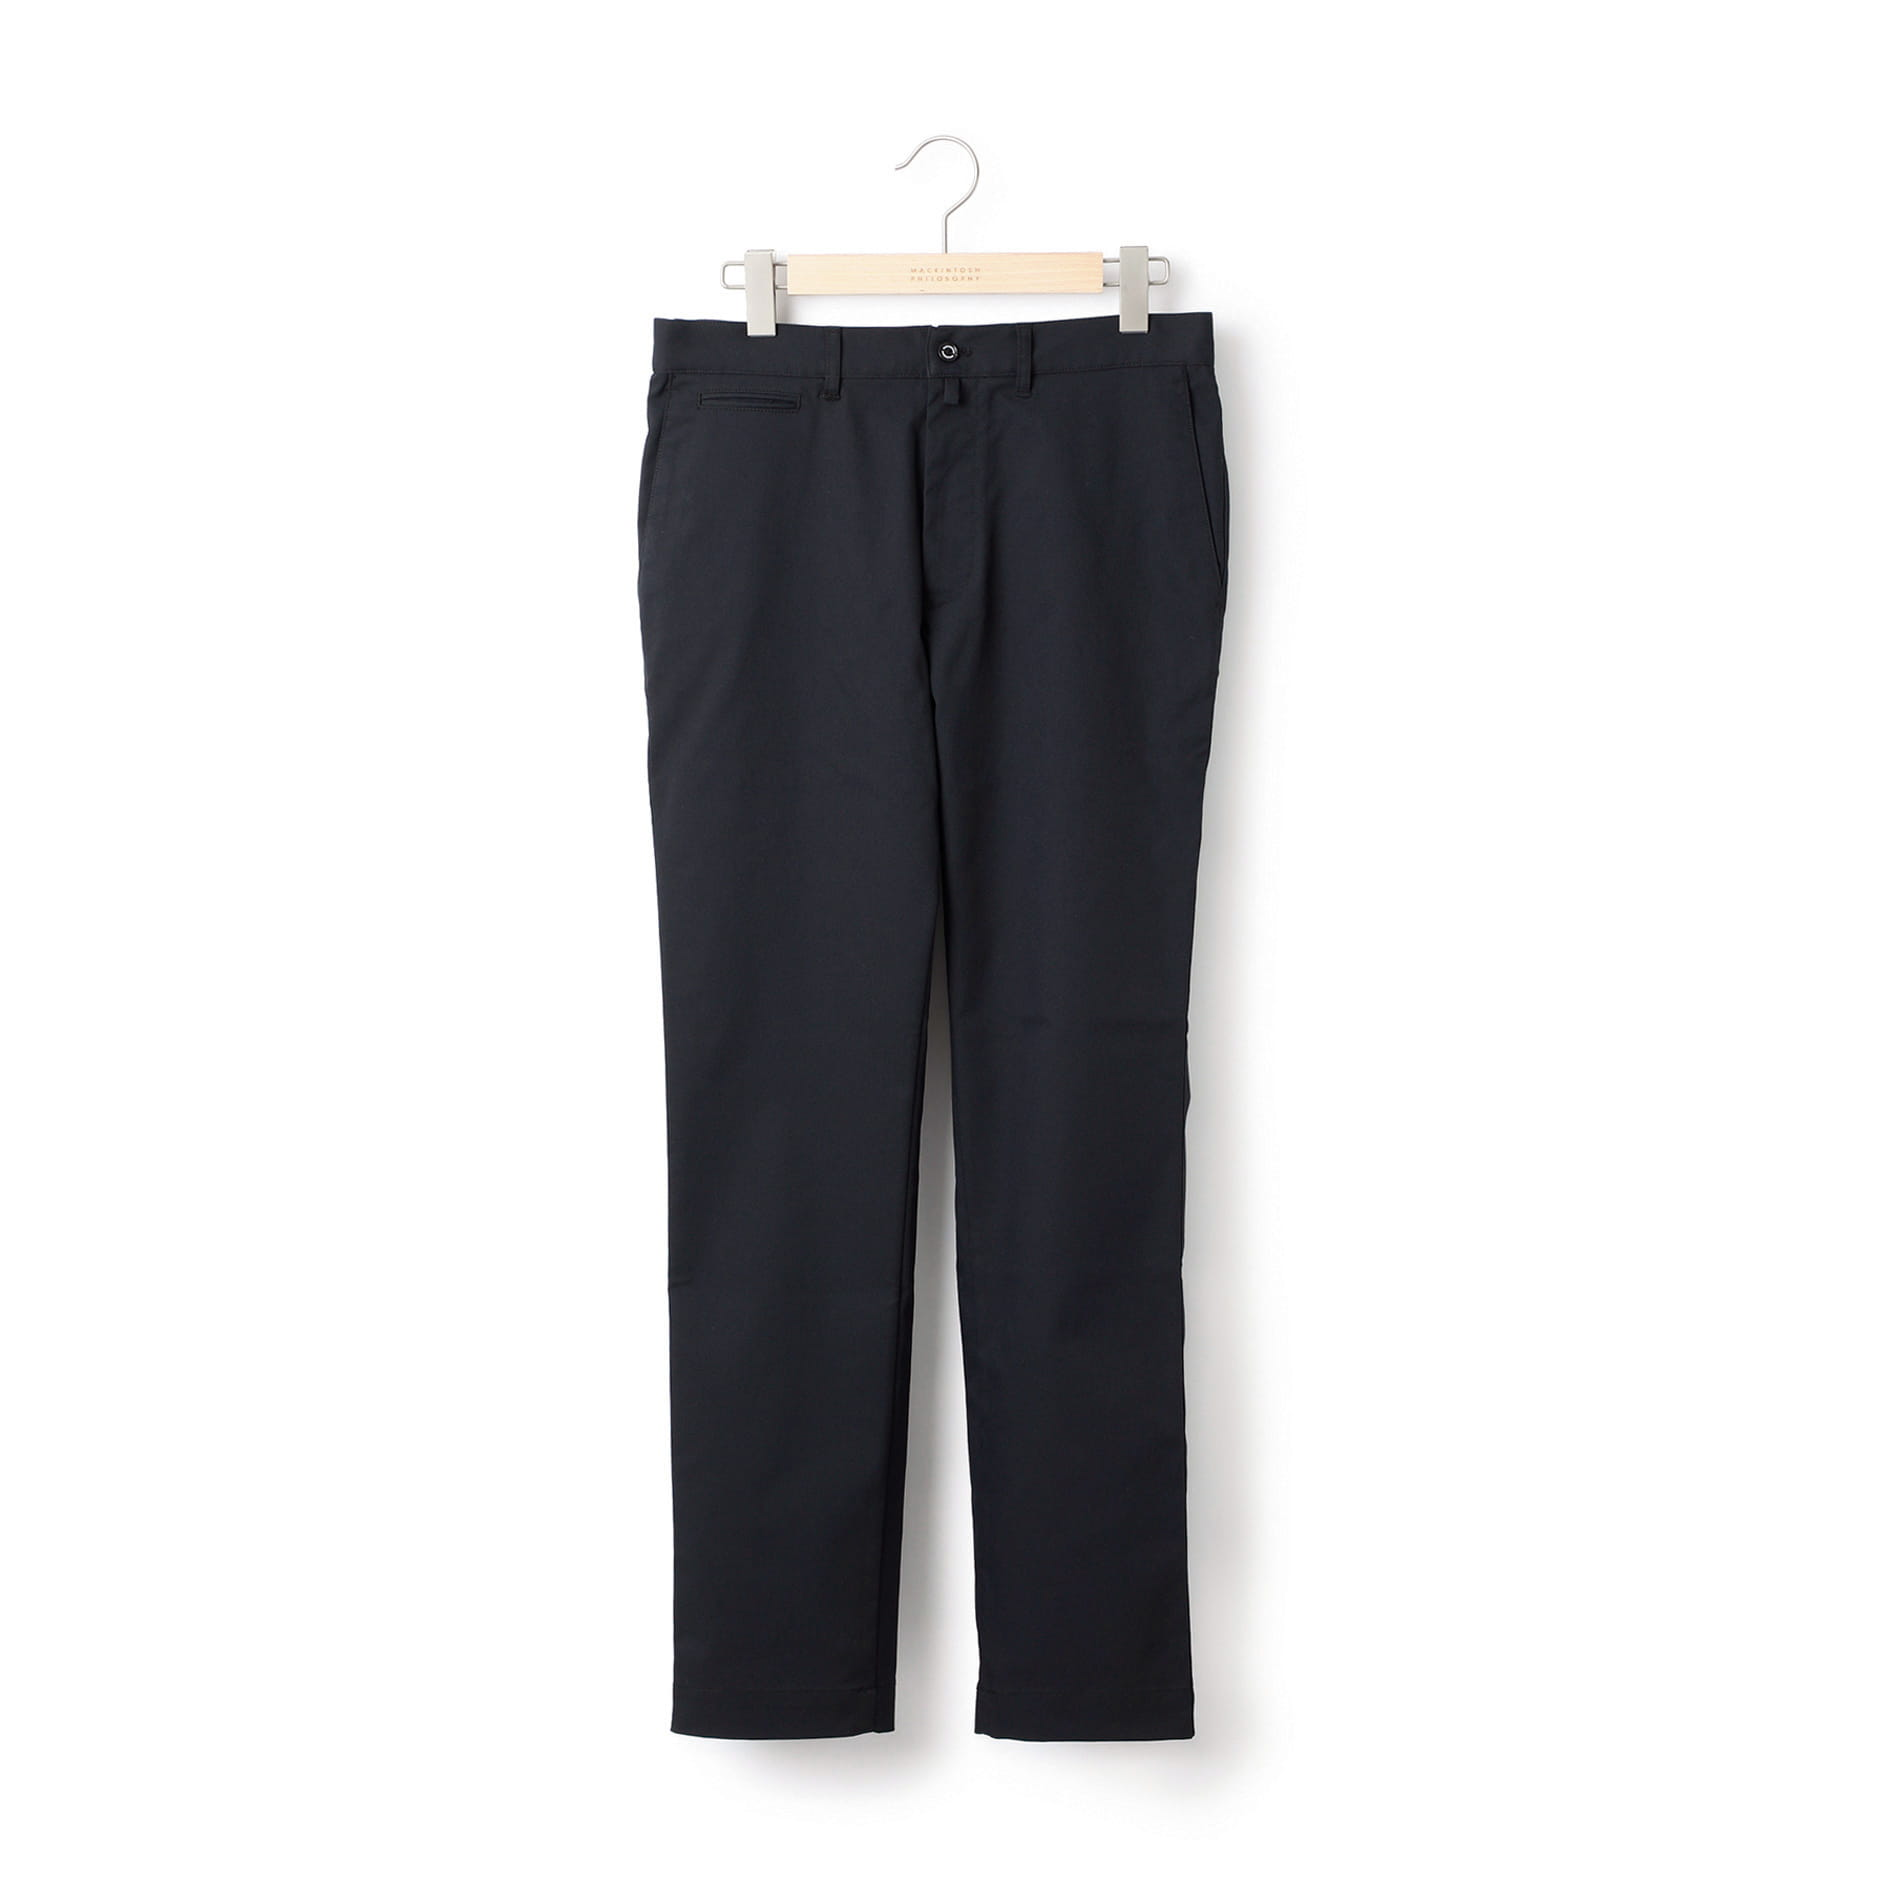 TECHNO CHINO TAPERD SLIM PANTS